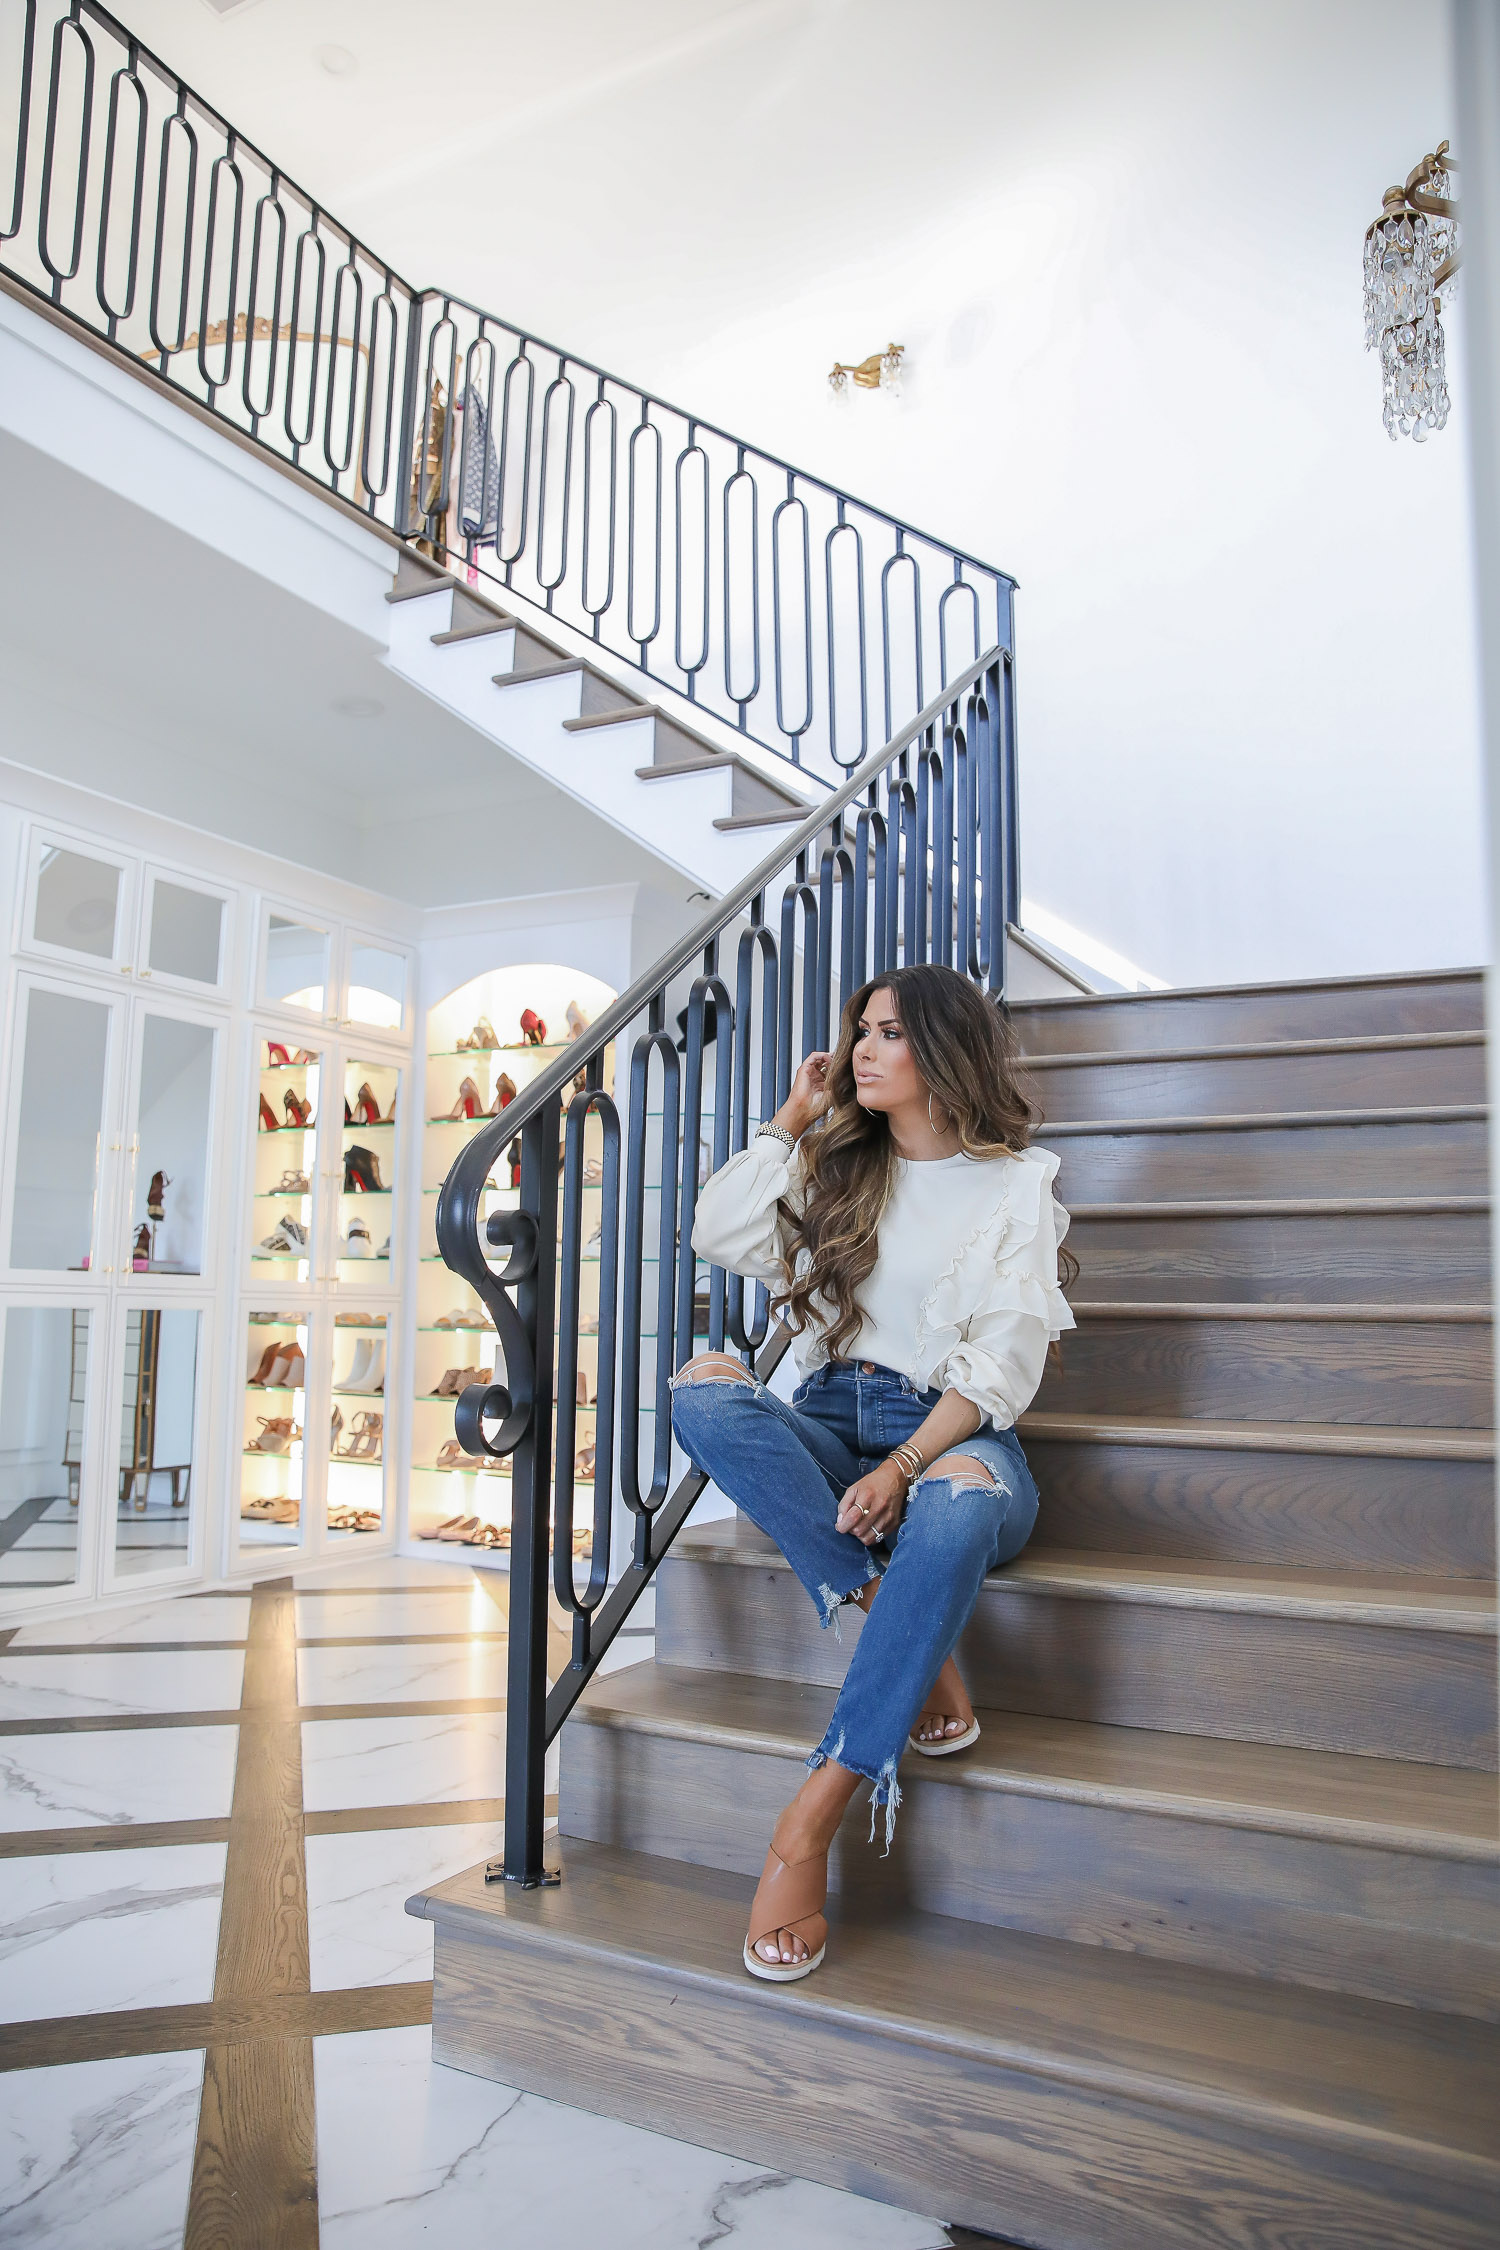 Work From Home Outfits by popular US fashion blog, The Sweetest Thing: image of Emily Gemma wearing a Express Racerback Best Loved Bra Cami, Express Chiffon Trim Crew Neck Fleece Sweatshirt, Express Large Metal Hoop Earrings and Express Super High Waisted Ripped Slim Ankle Jeans.